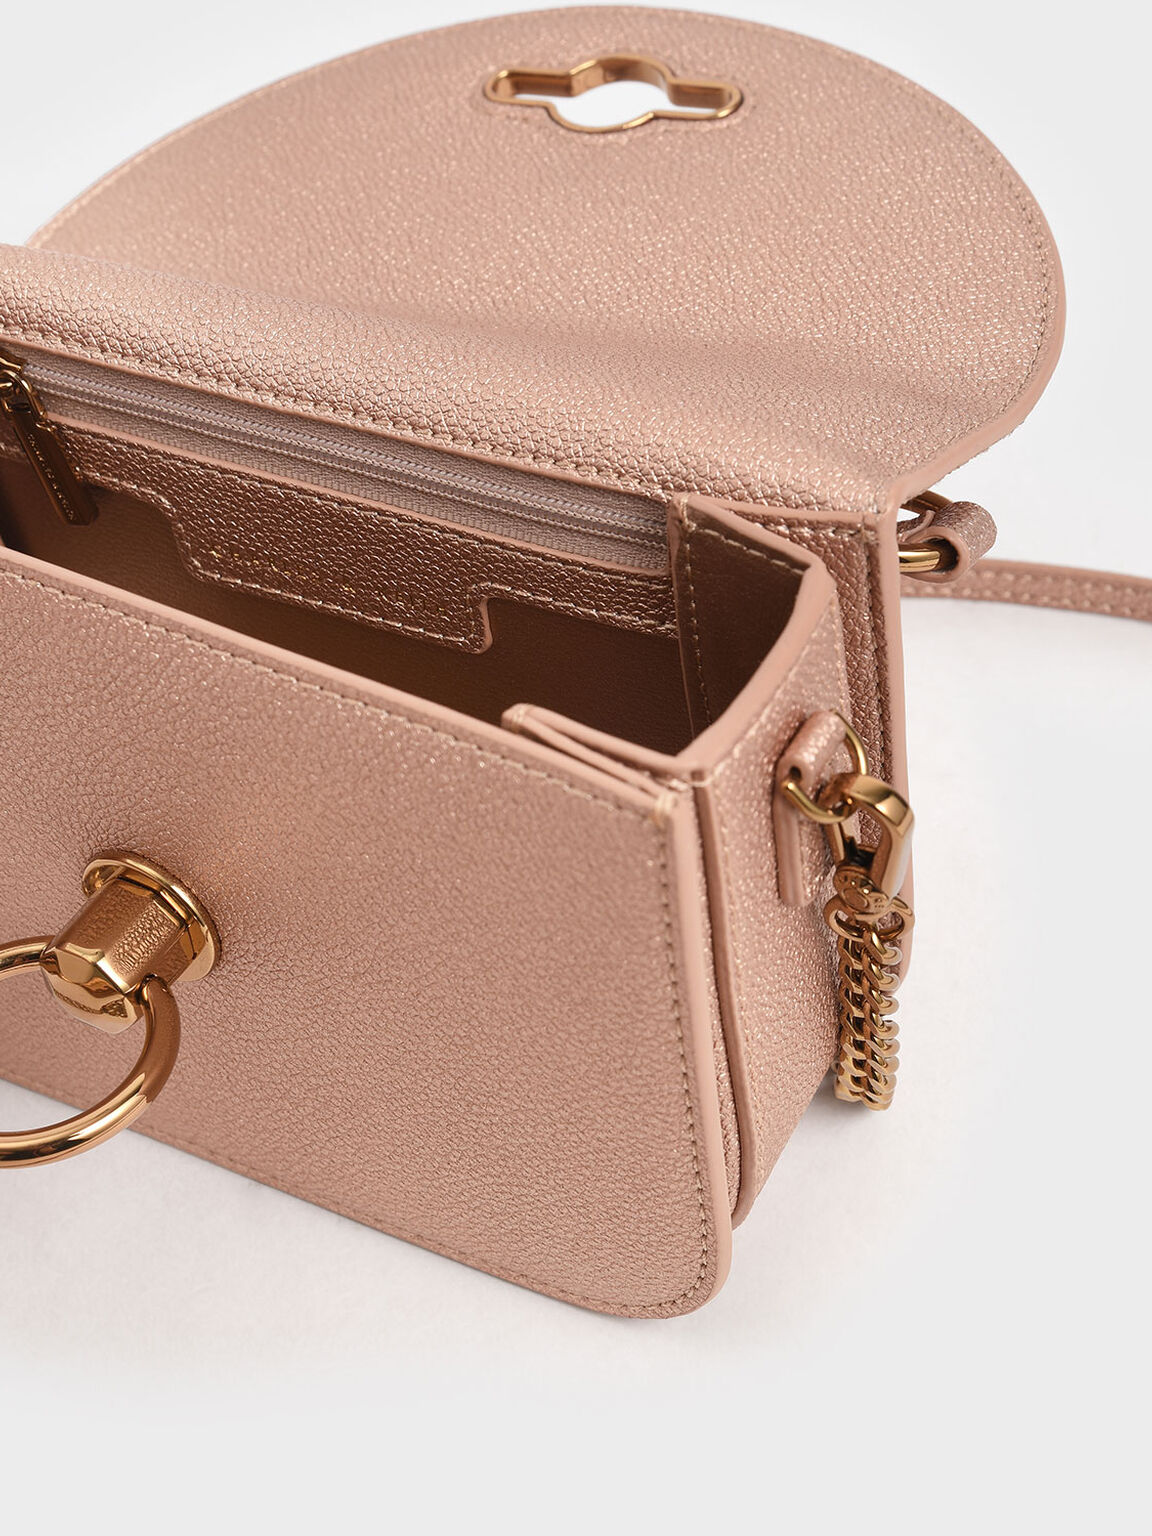 Ring Push Lock Embellished Bag, Rose Gold, hi-res